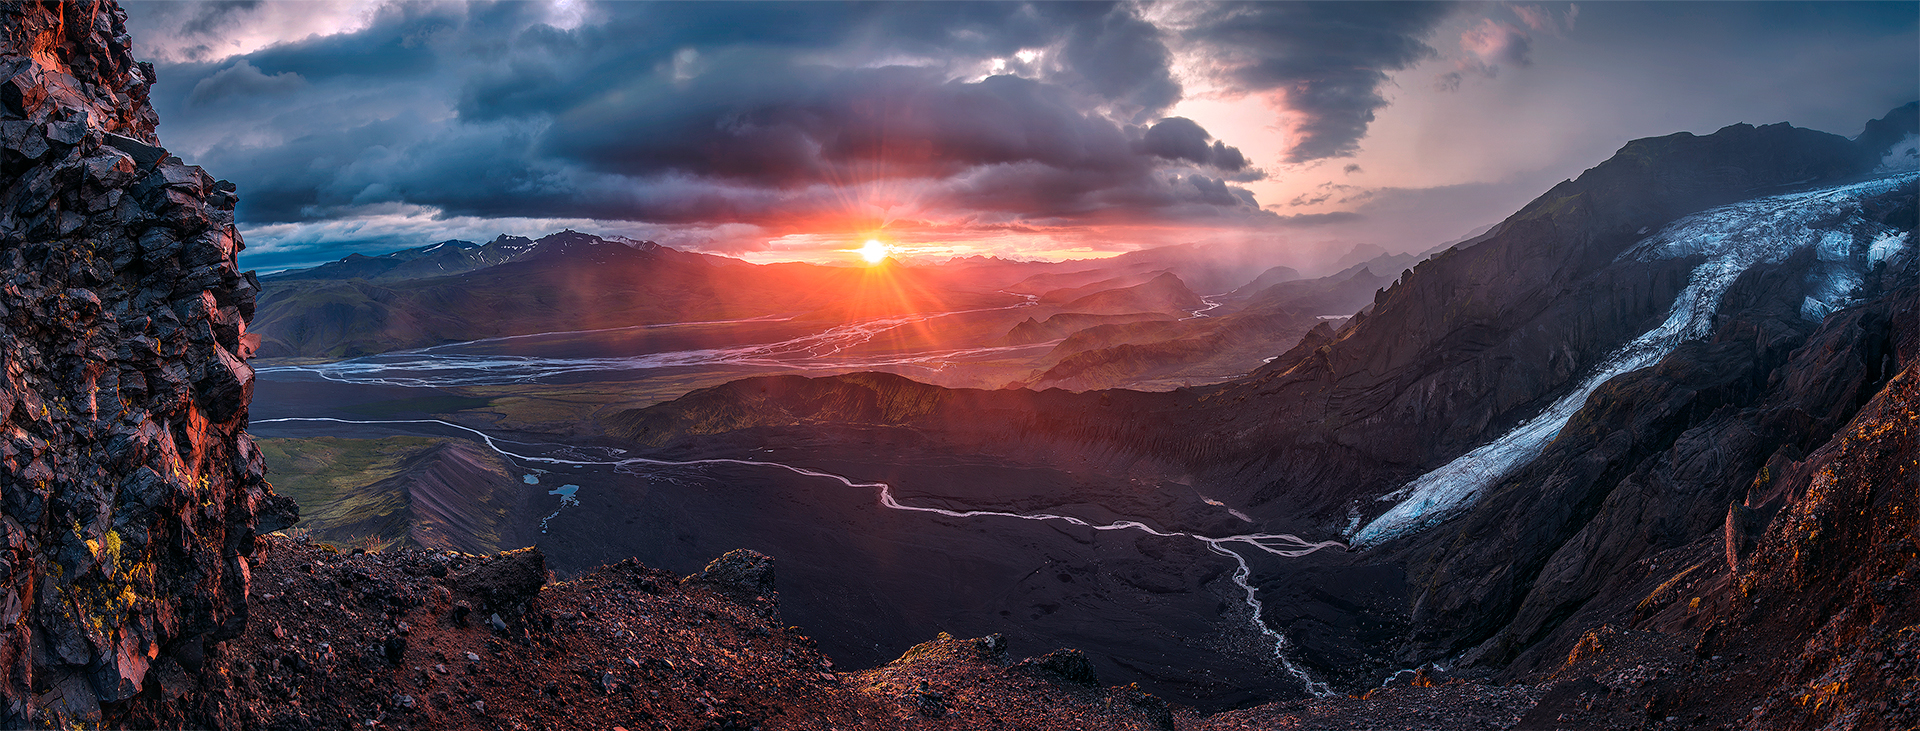 ©Max Rive<br /> &nbsp;<br /> <a href=http://naked-science.ru/sites/default/files/images/An-ancient-tree-sentinel-praying-to-the-gods.jpg><img alt=